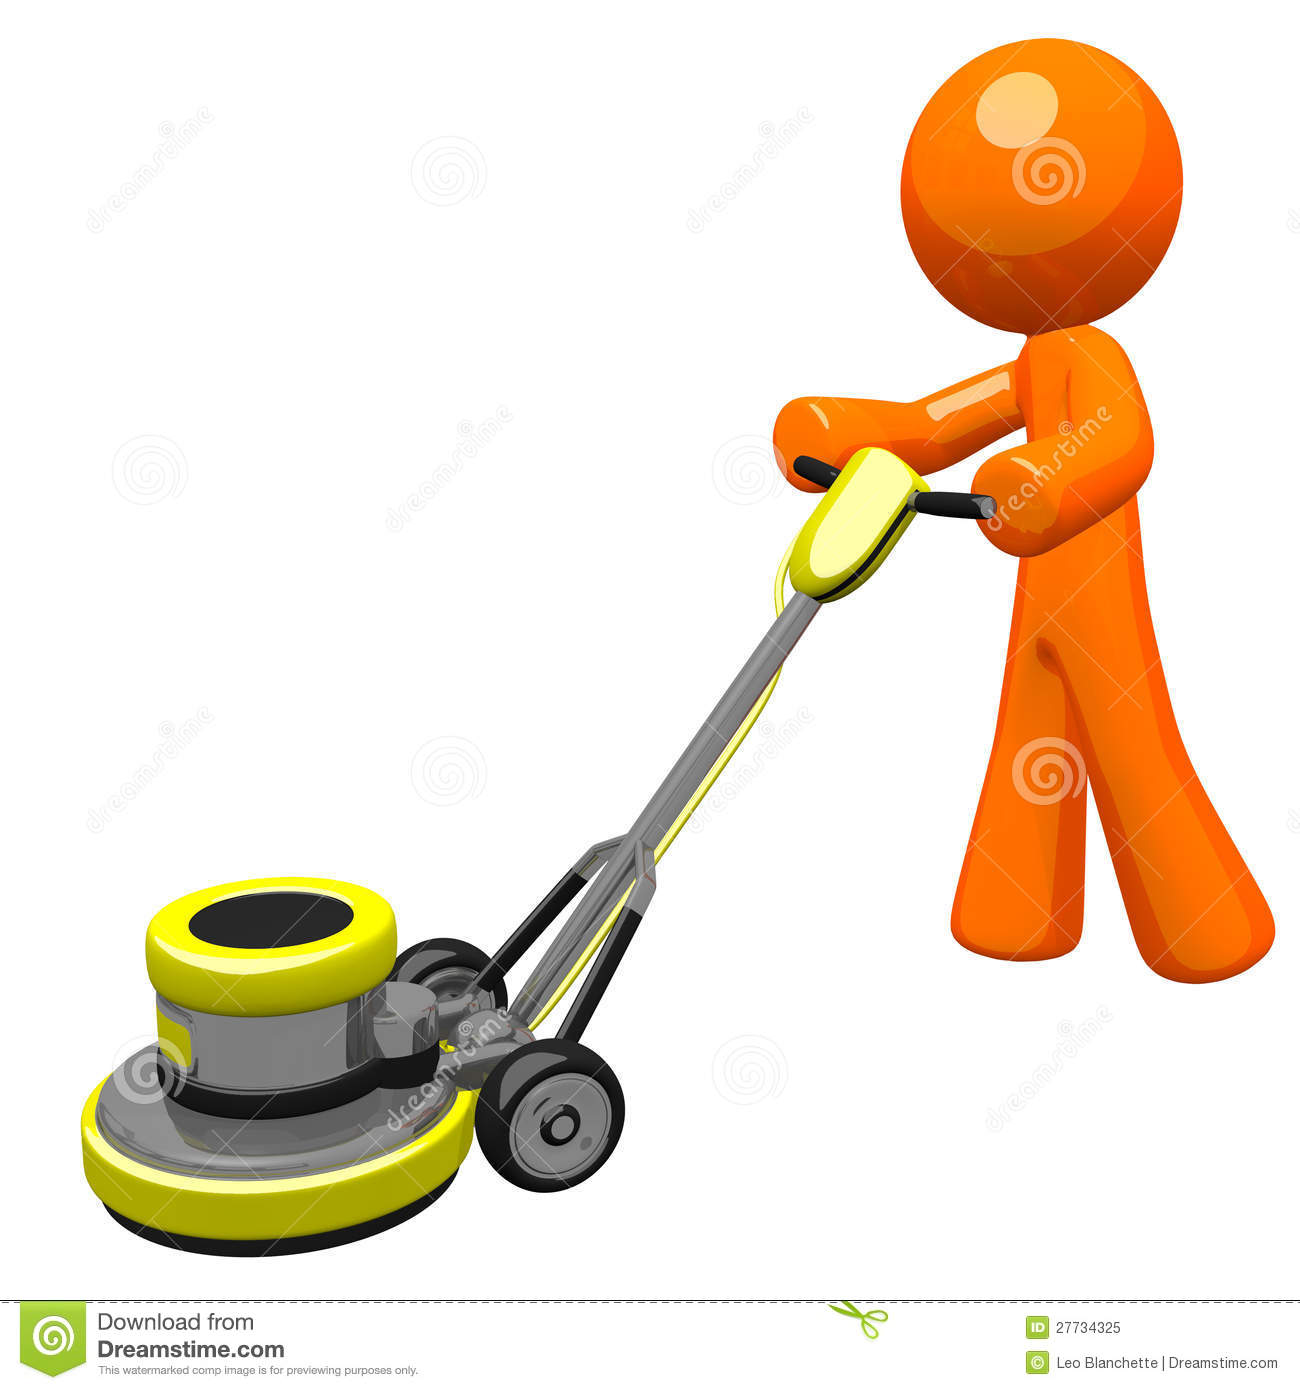 Clip Art of Man Sanding Floors.